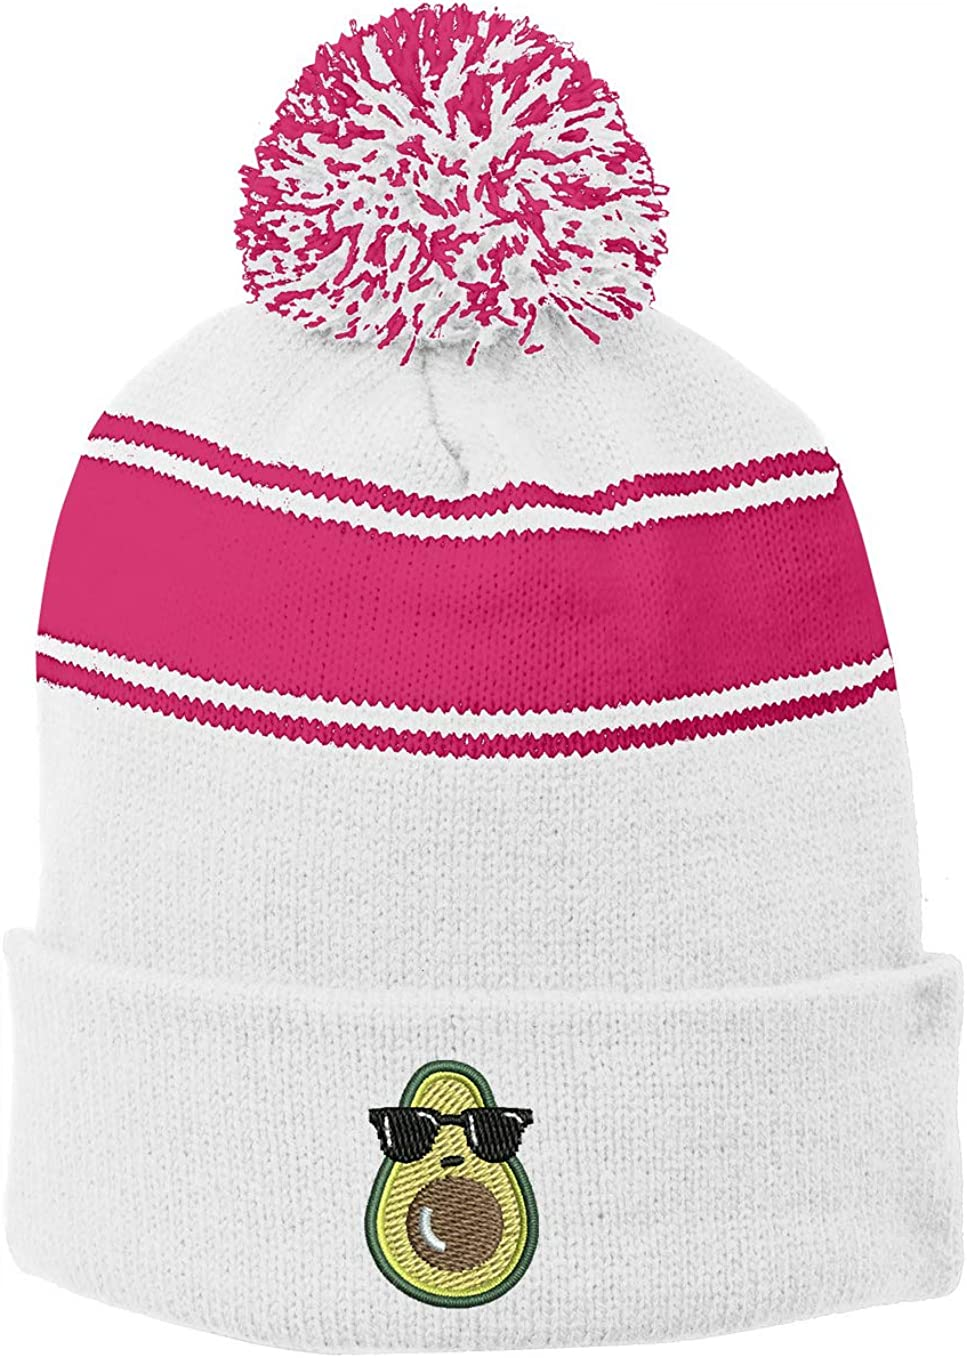 6 Colors INK STITCH Stc28 Avocado Stripe Unisex Winter Pom Pom Beanie Hats